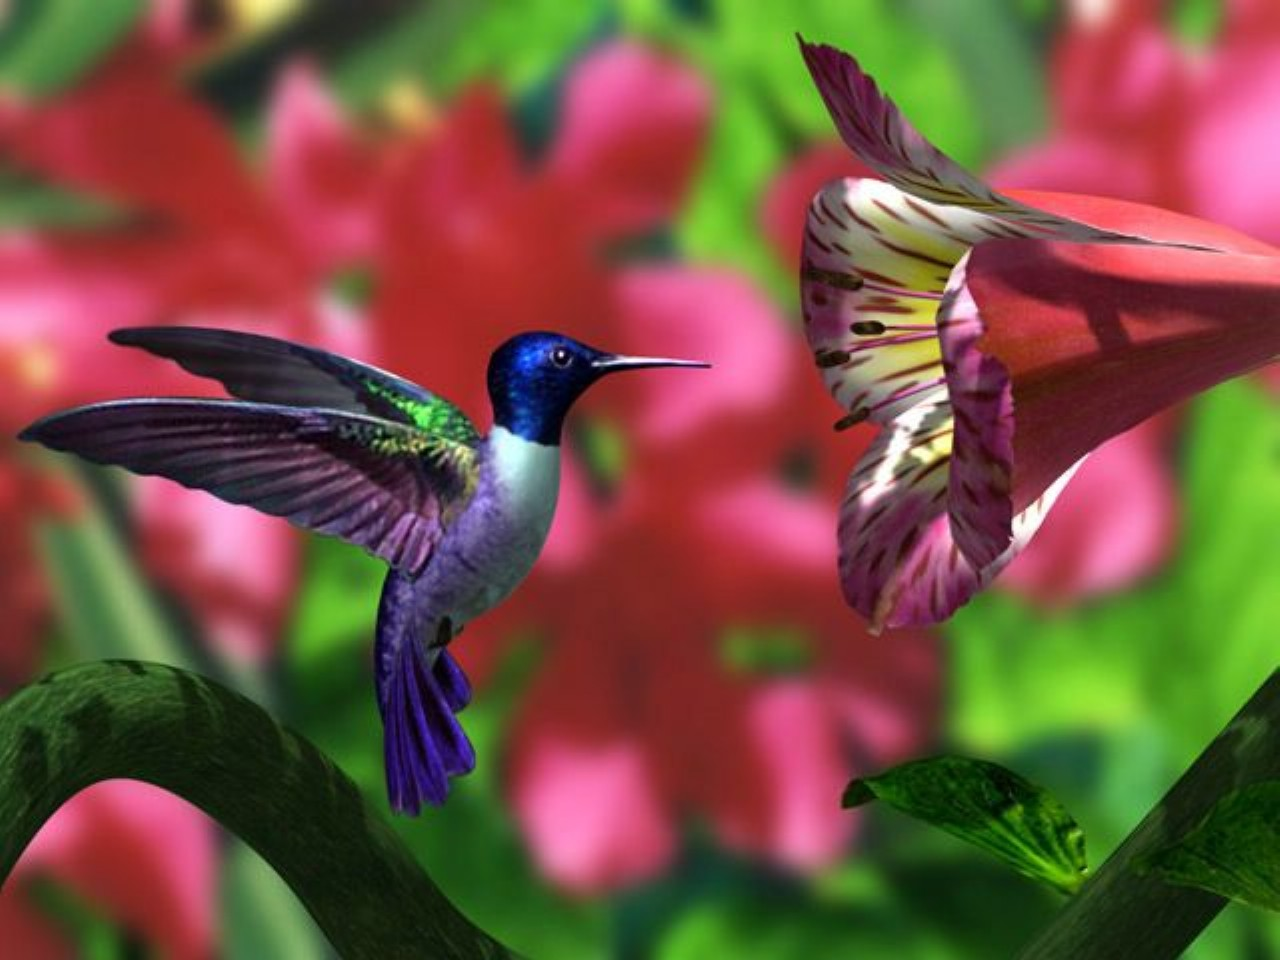 ... Hummingbird Wallpaper; Hummingbird Wallpaper